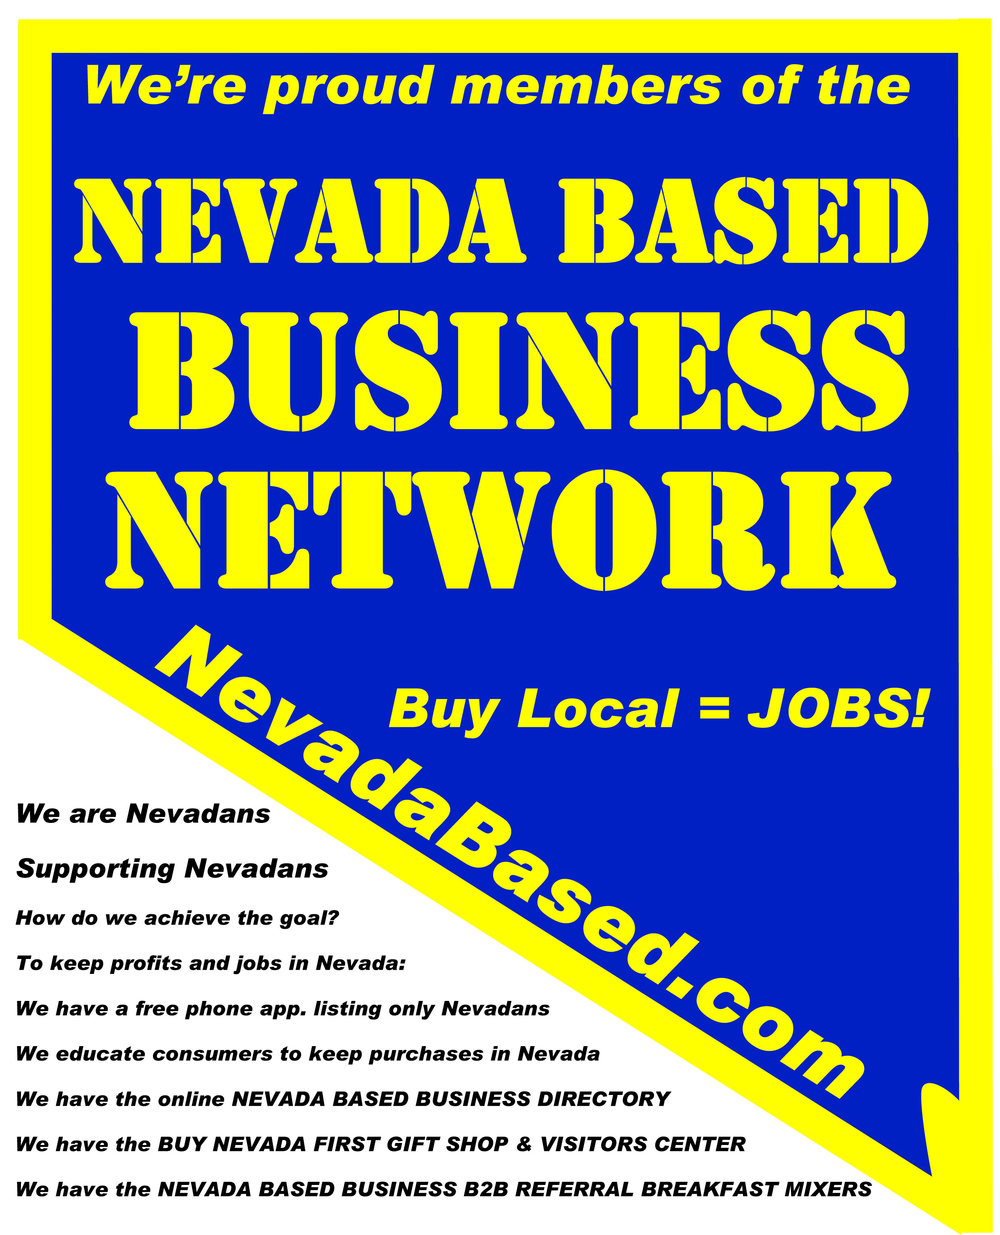 Nevada Based Business Network